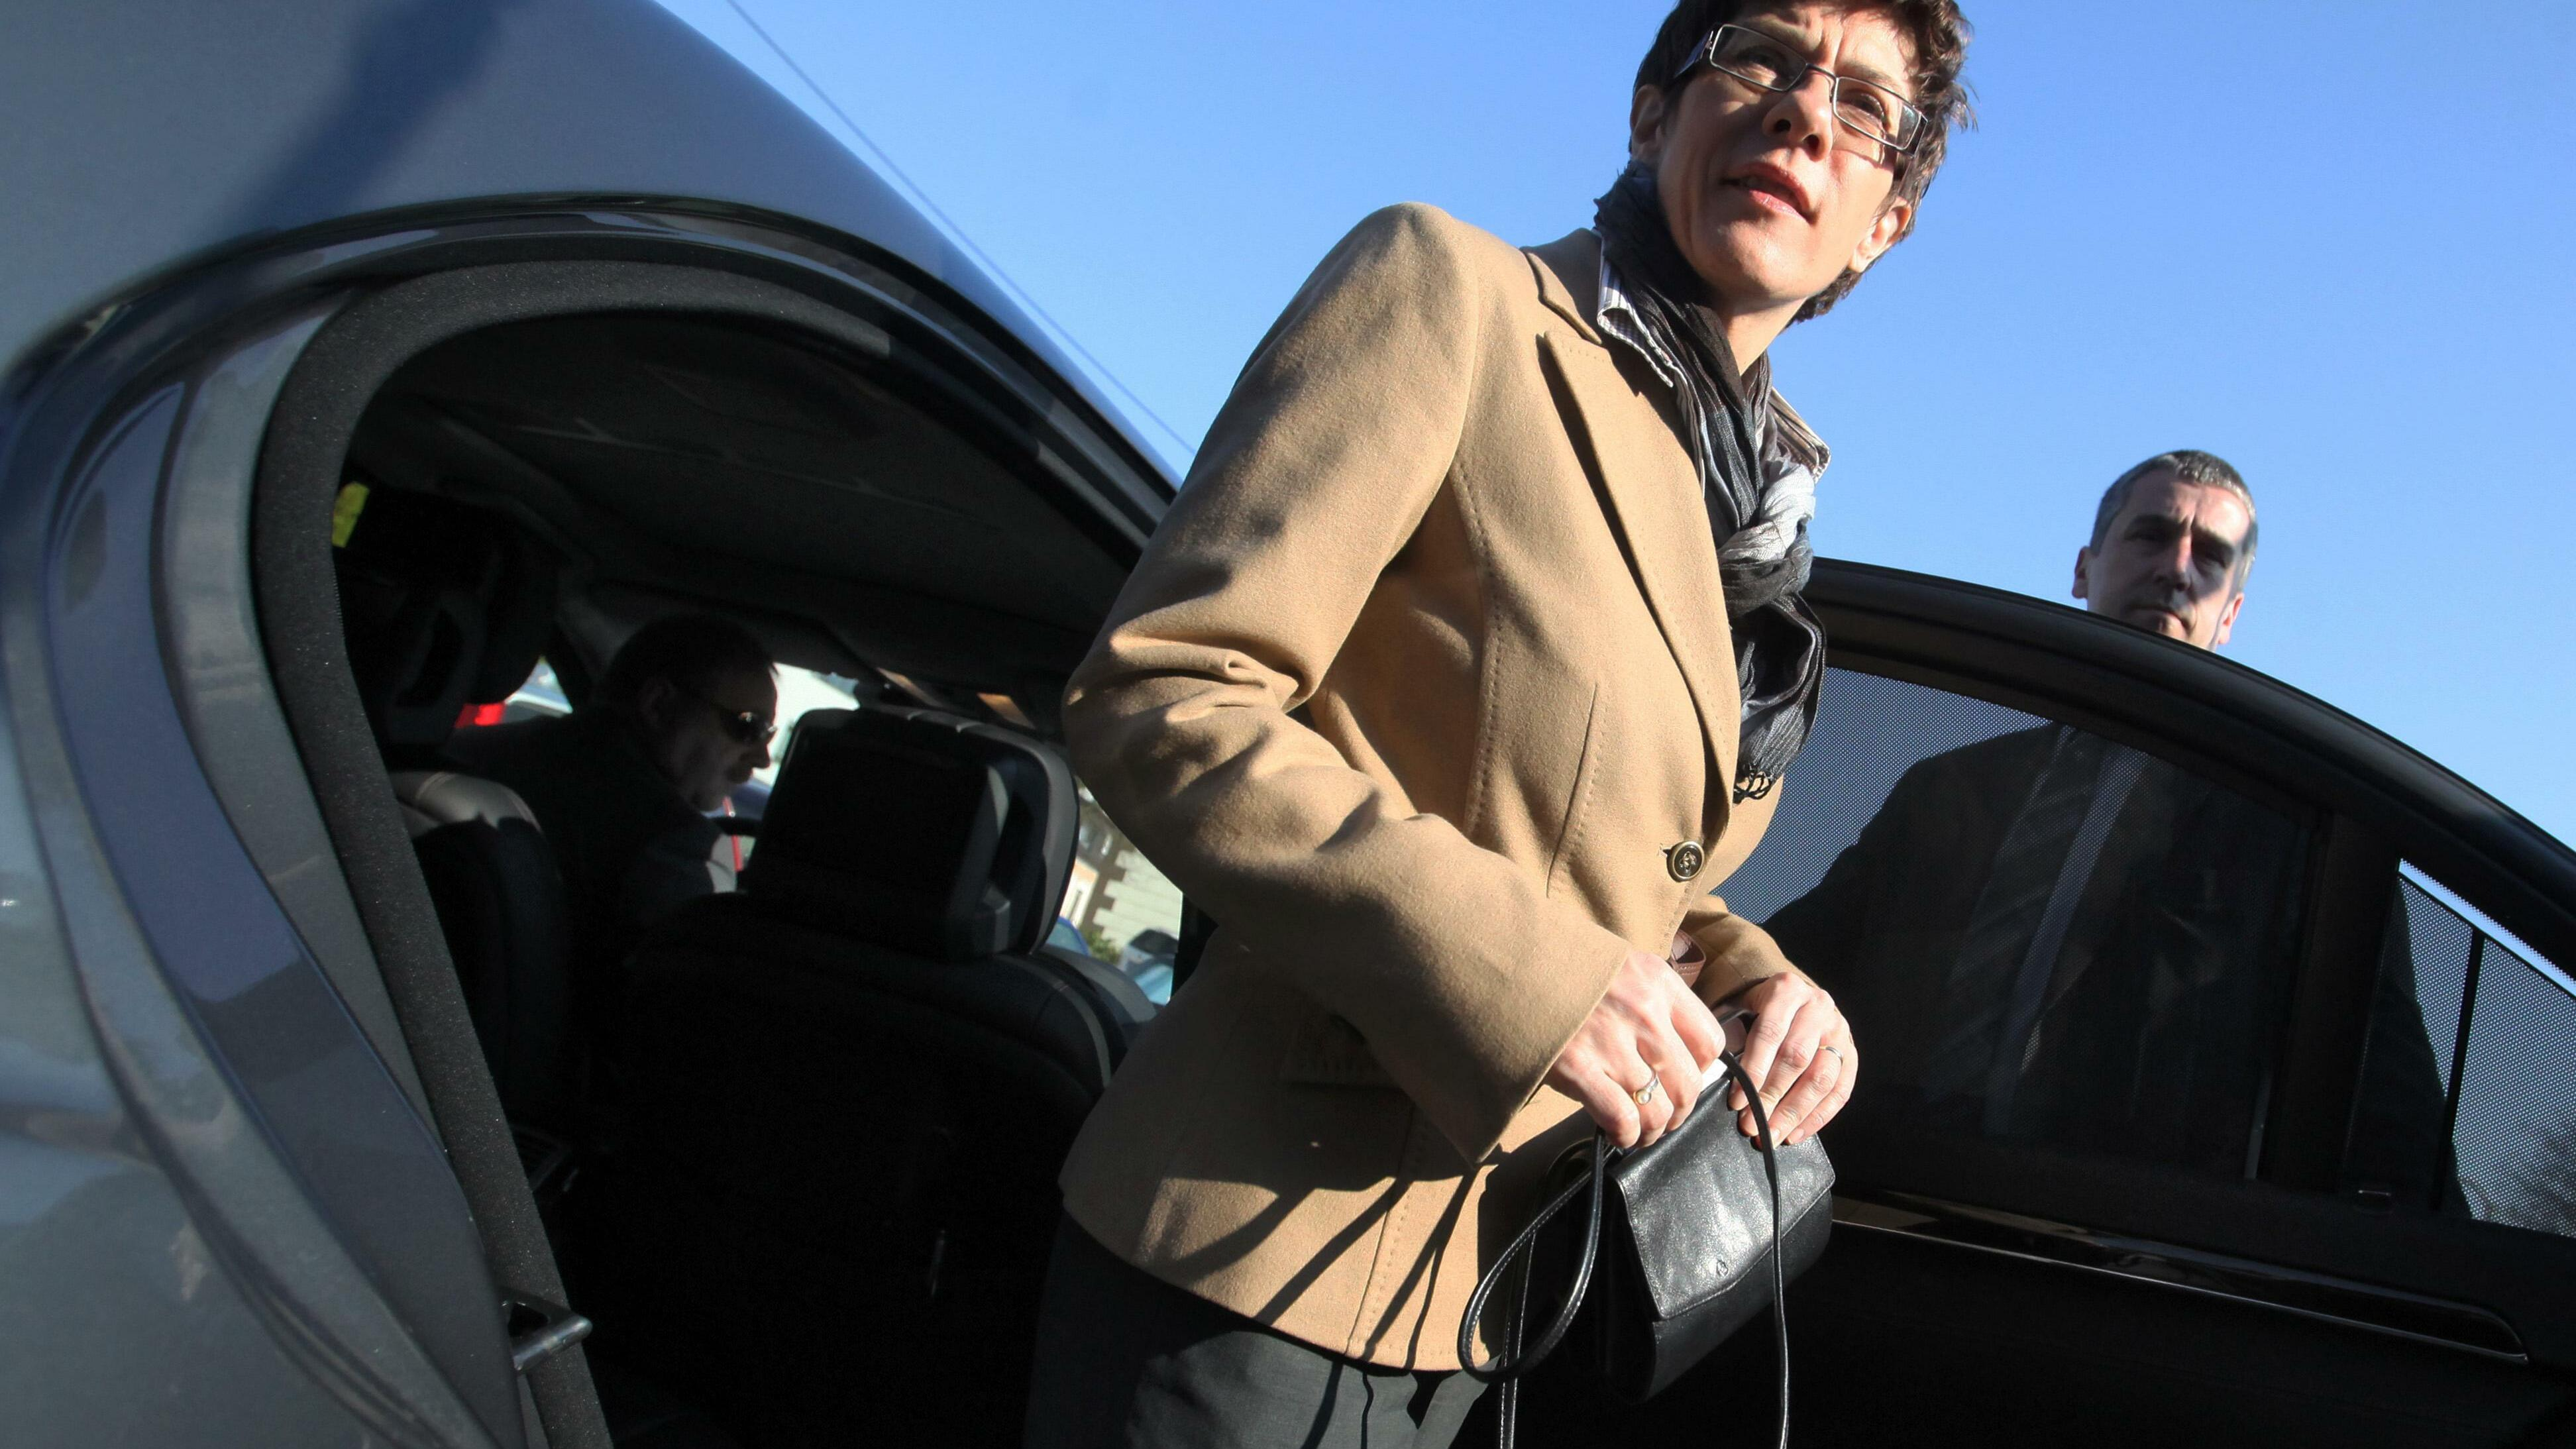 ...zum Beispiel mit der saarländischen Ministerpräsidentin Annegret Kramp-Karrenbauer. Ihr Dienstwagen - ein Mercedes Benz E 250 Blue Efficiency (Benzin) - pustet 154g/km CO2 in die Luft.